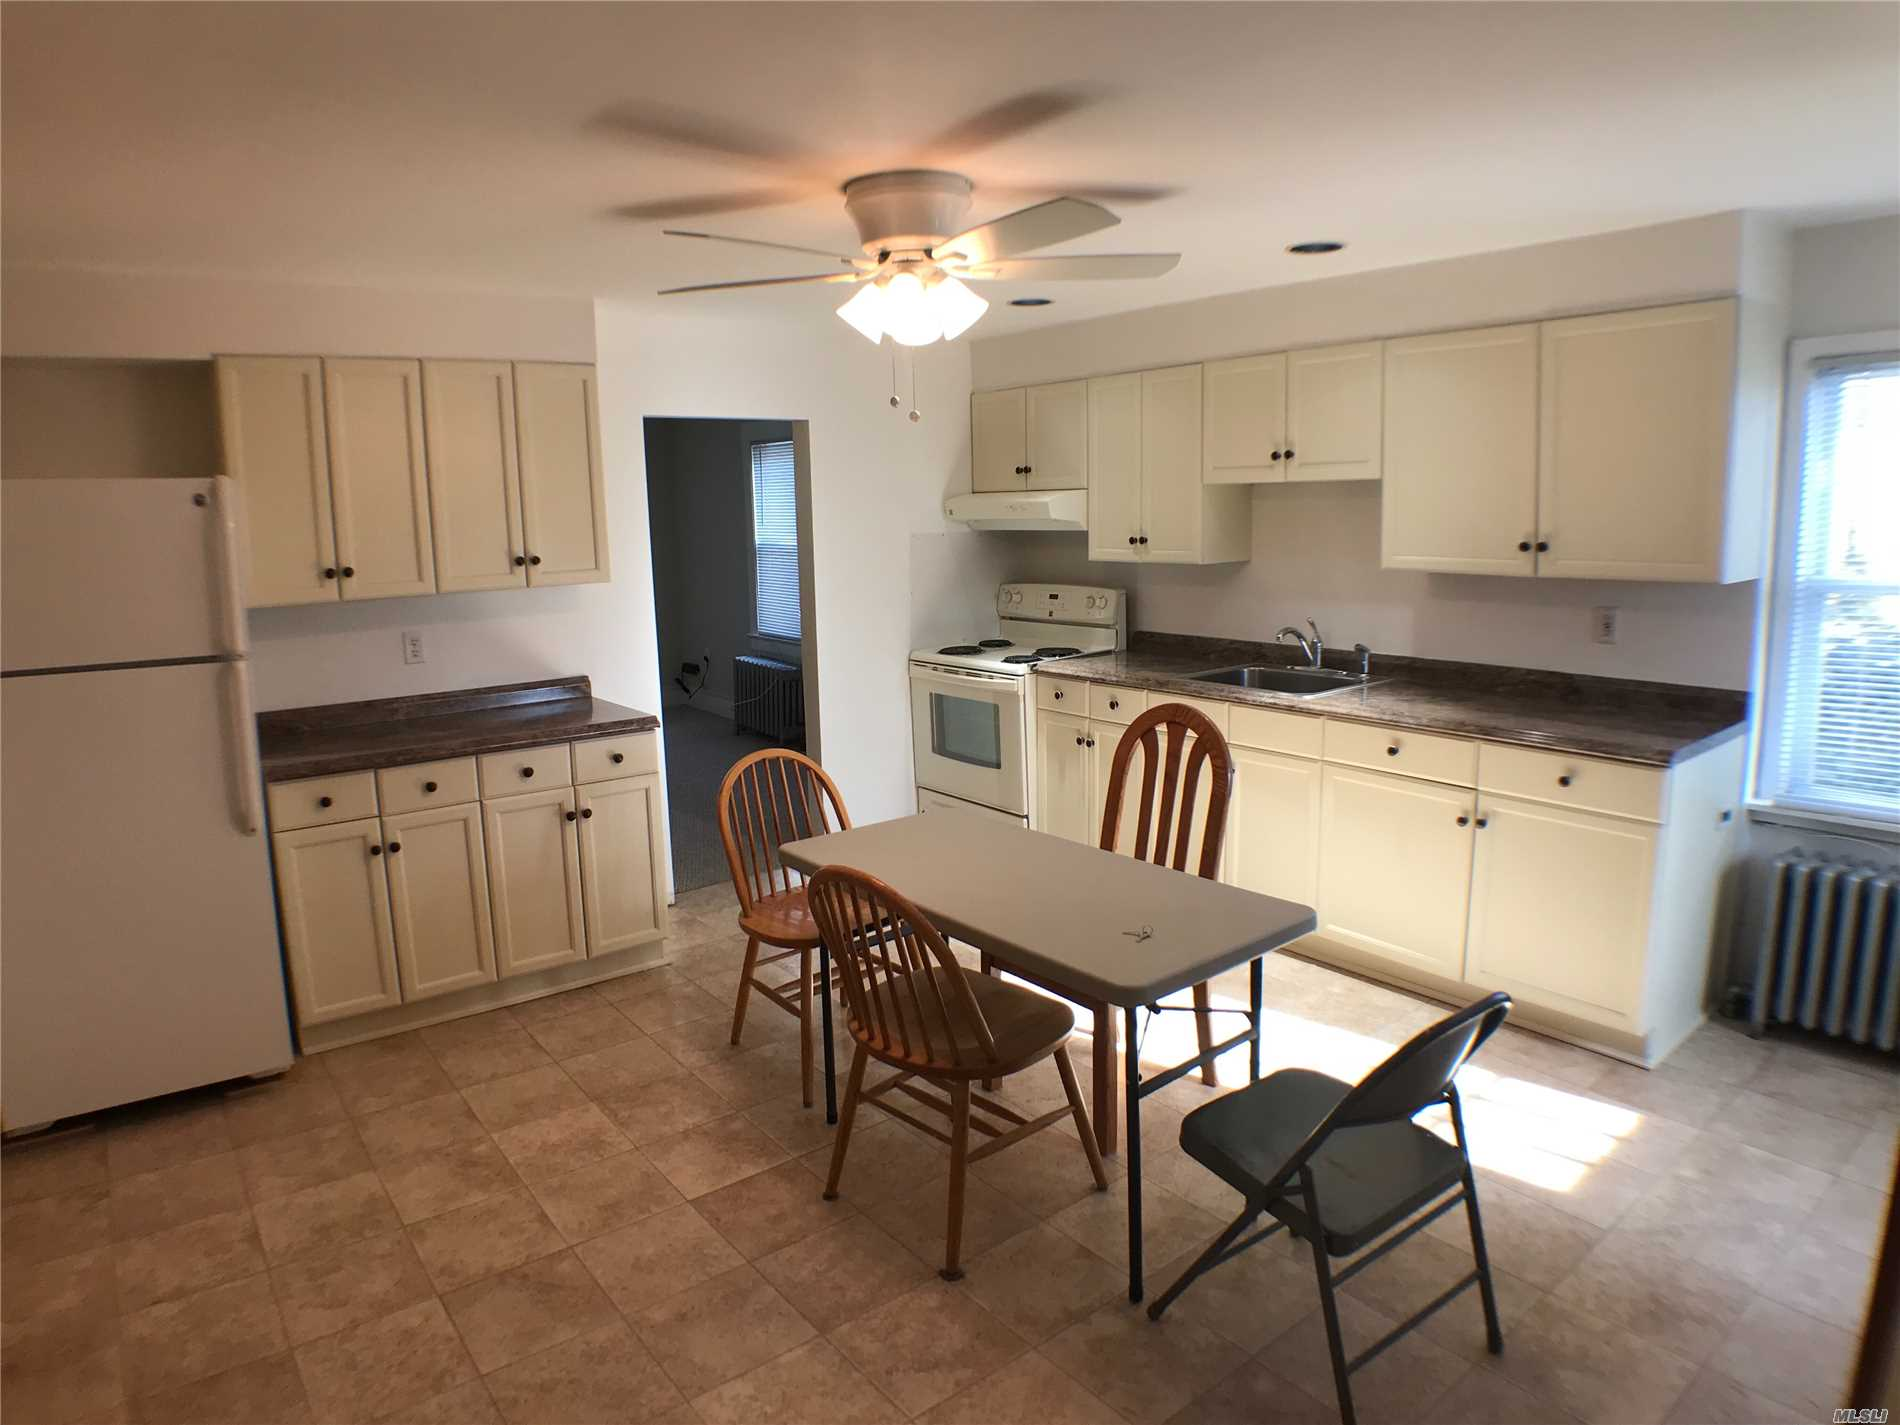 Super Clean 2 Bedroom Apt With An Office, Large Eik, Washer/Dryer, Separate Entrance, Use Of Driveway. 3 Blocks To Syosset Lirr Station, Restaurants And Shopping. 40 Min. To Nyc. No Pets, No Smoking, No Use Of Yard.